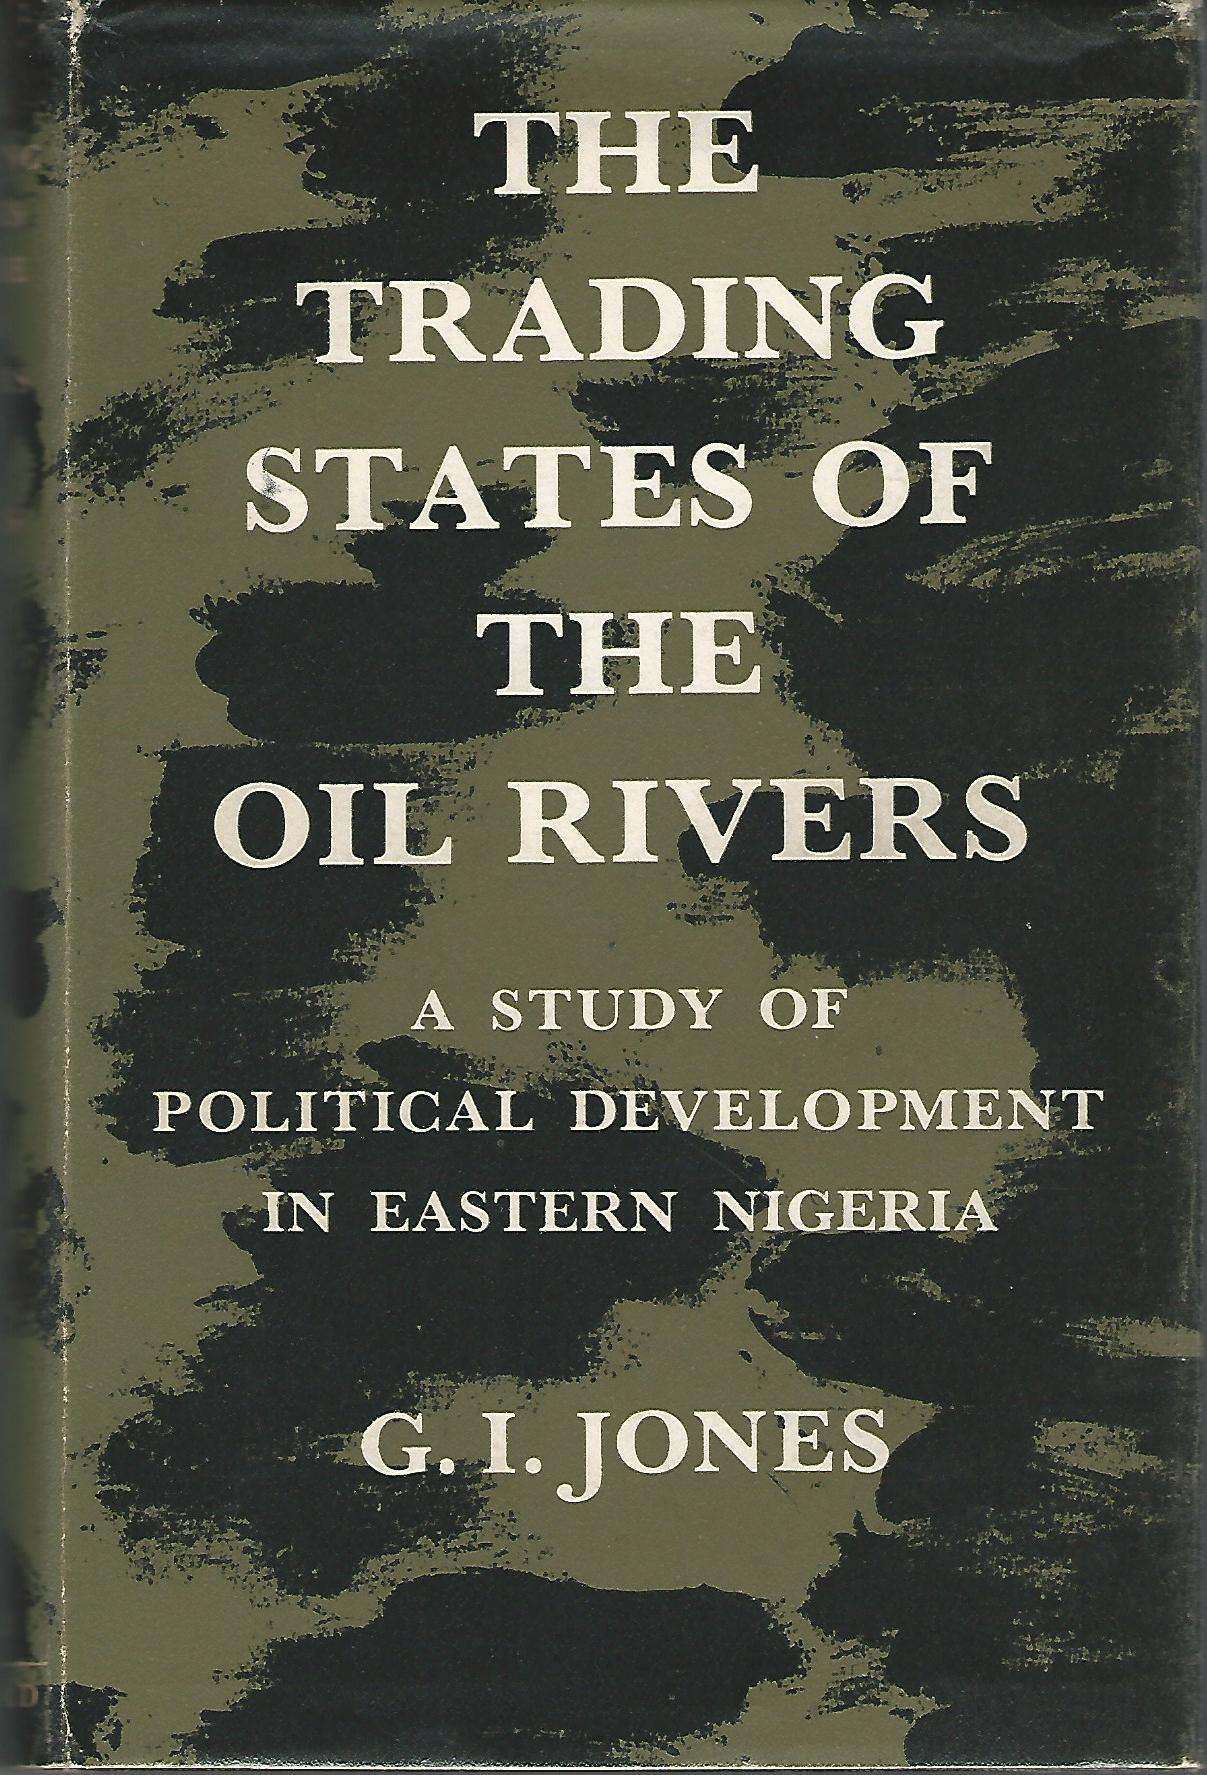 Image for The Trading States of the Oil Rivers: A Study of Political Development in Eastern Nigeria.